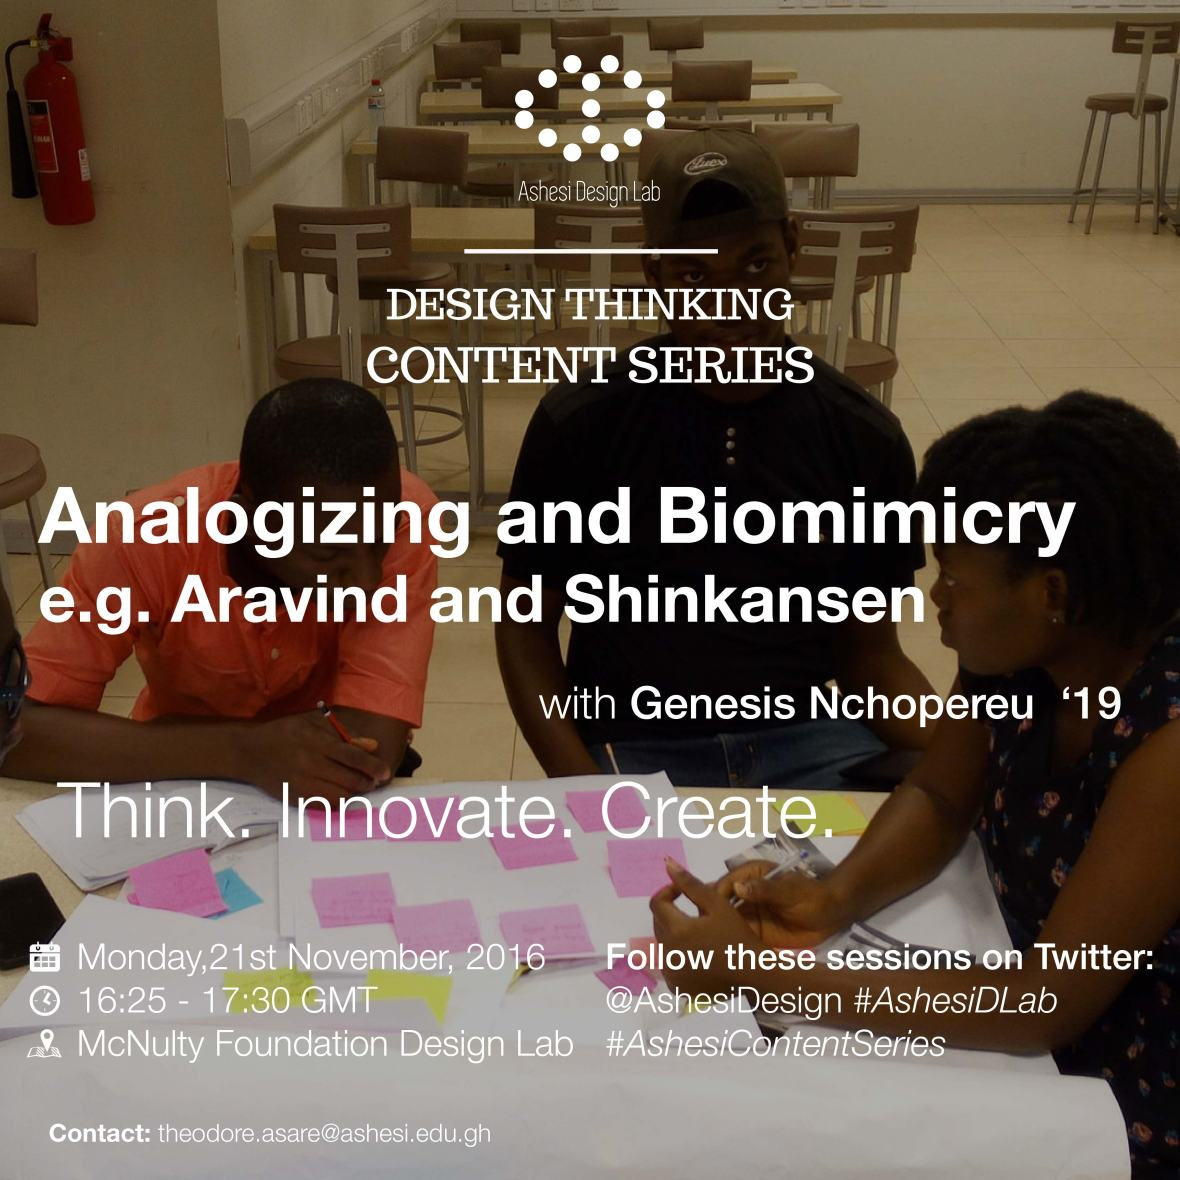 ashesi-dlab-content-series-biomimicry-01